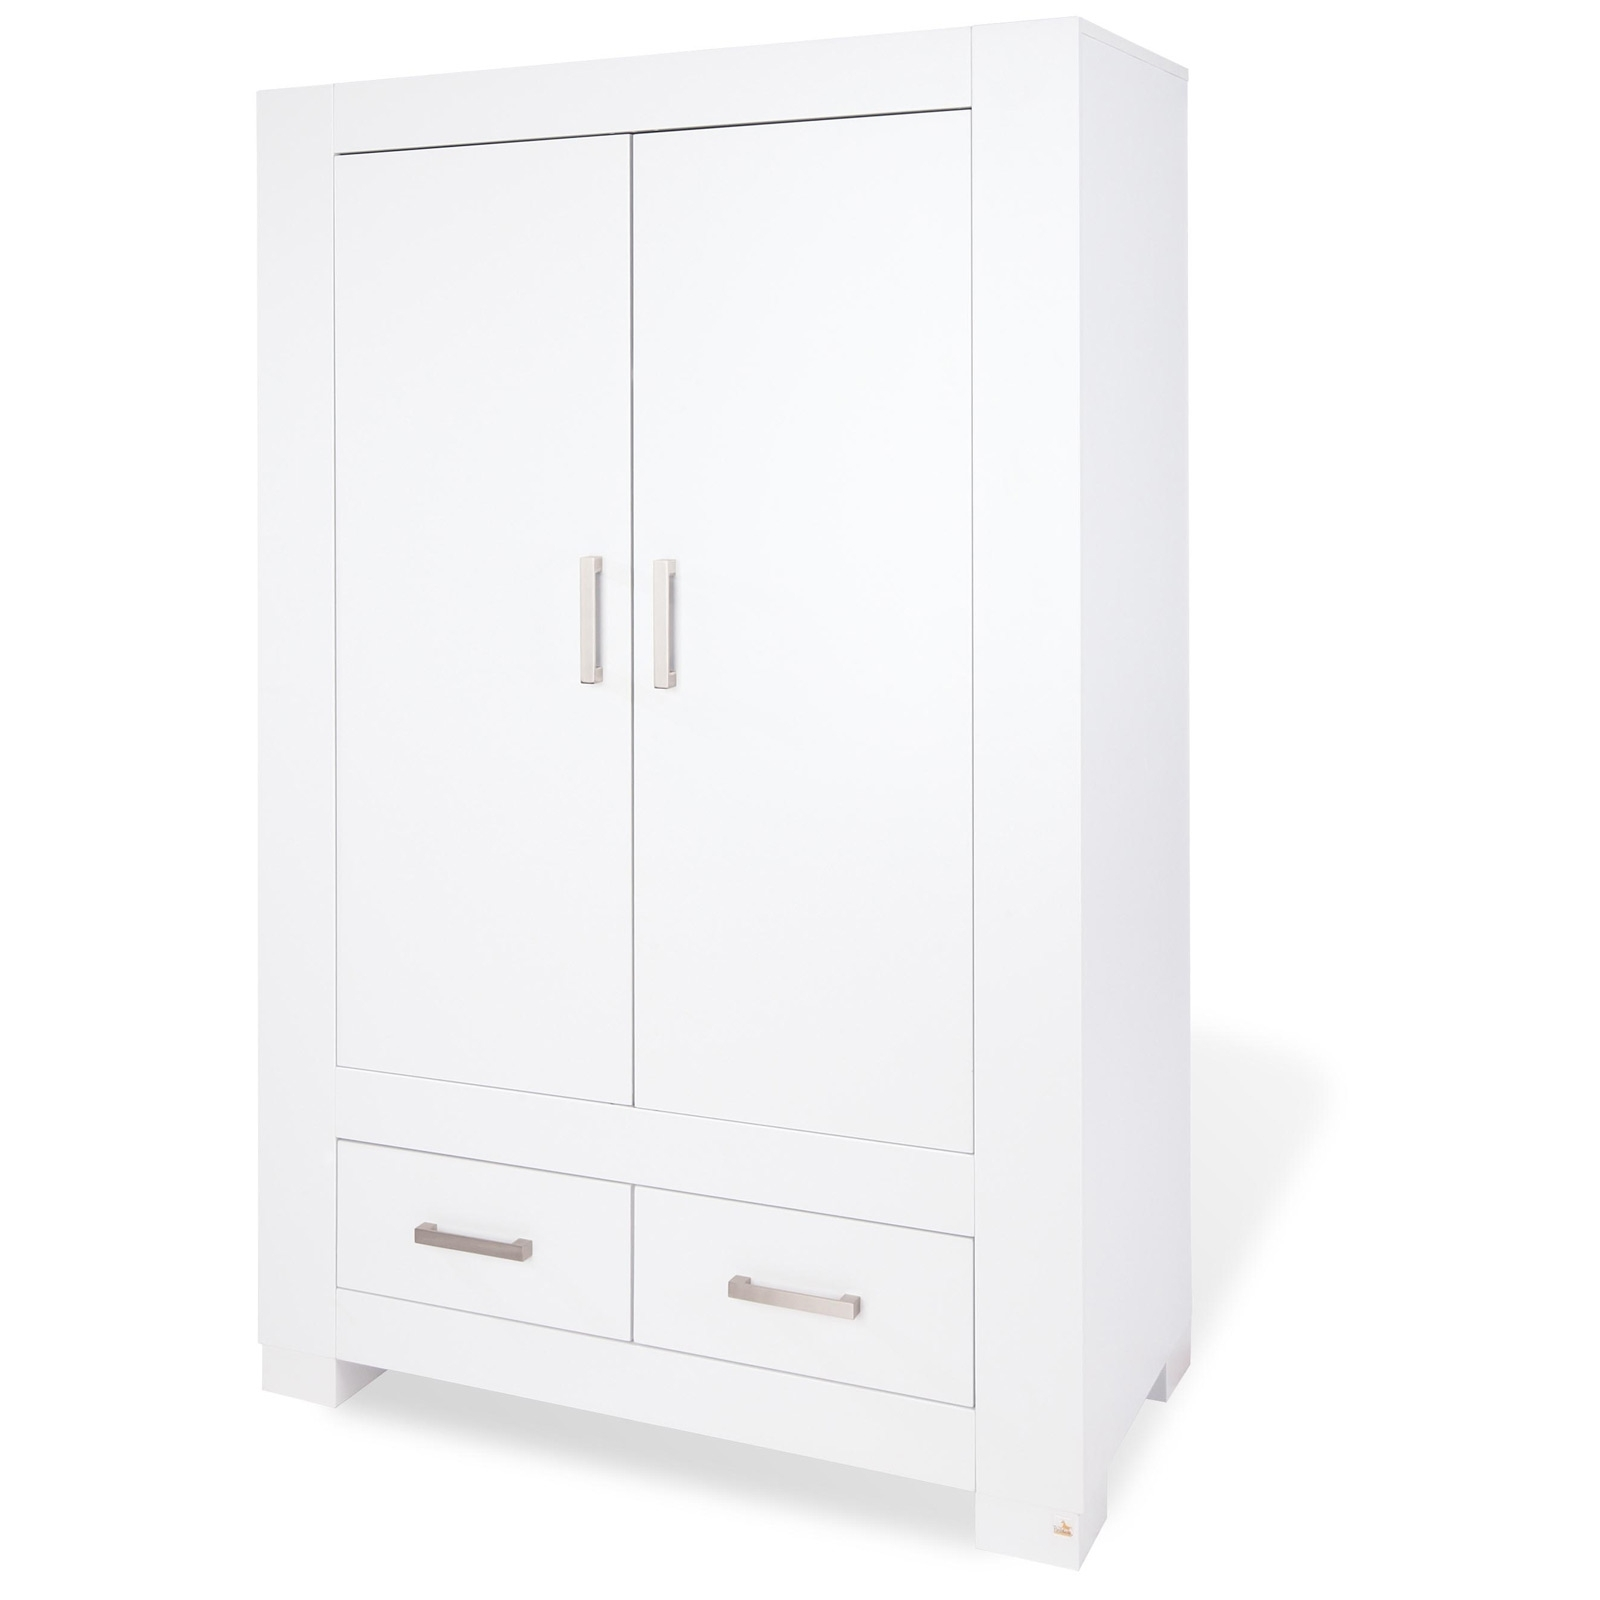 112 armoire 2 portes blanche armoire hedda blanche 2 portes battantes armoire blanche 2. Black Bedroom Furniture Sets. Home Design Ideas